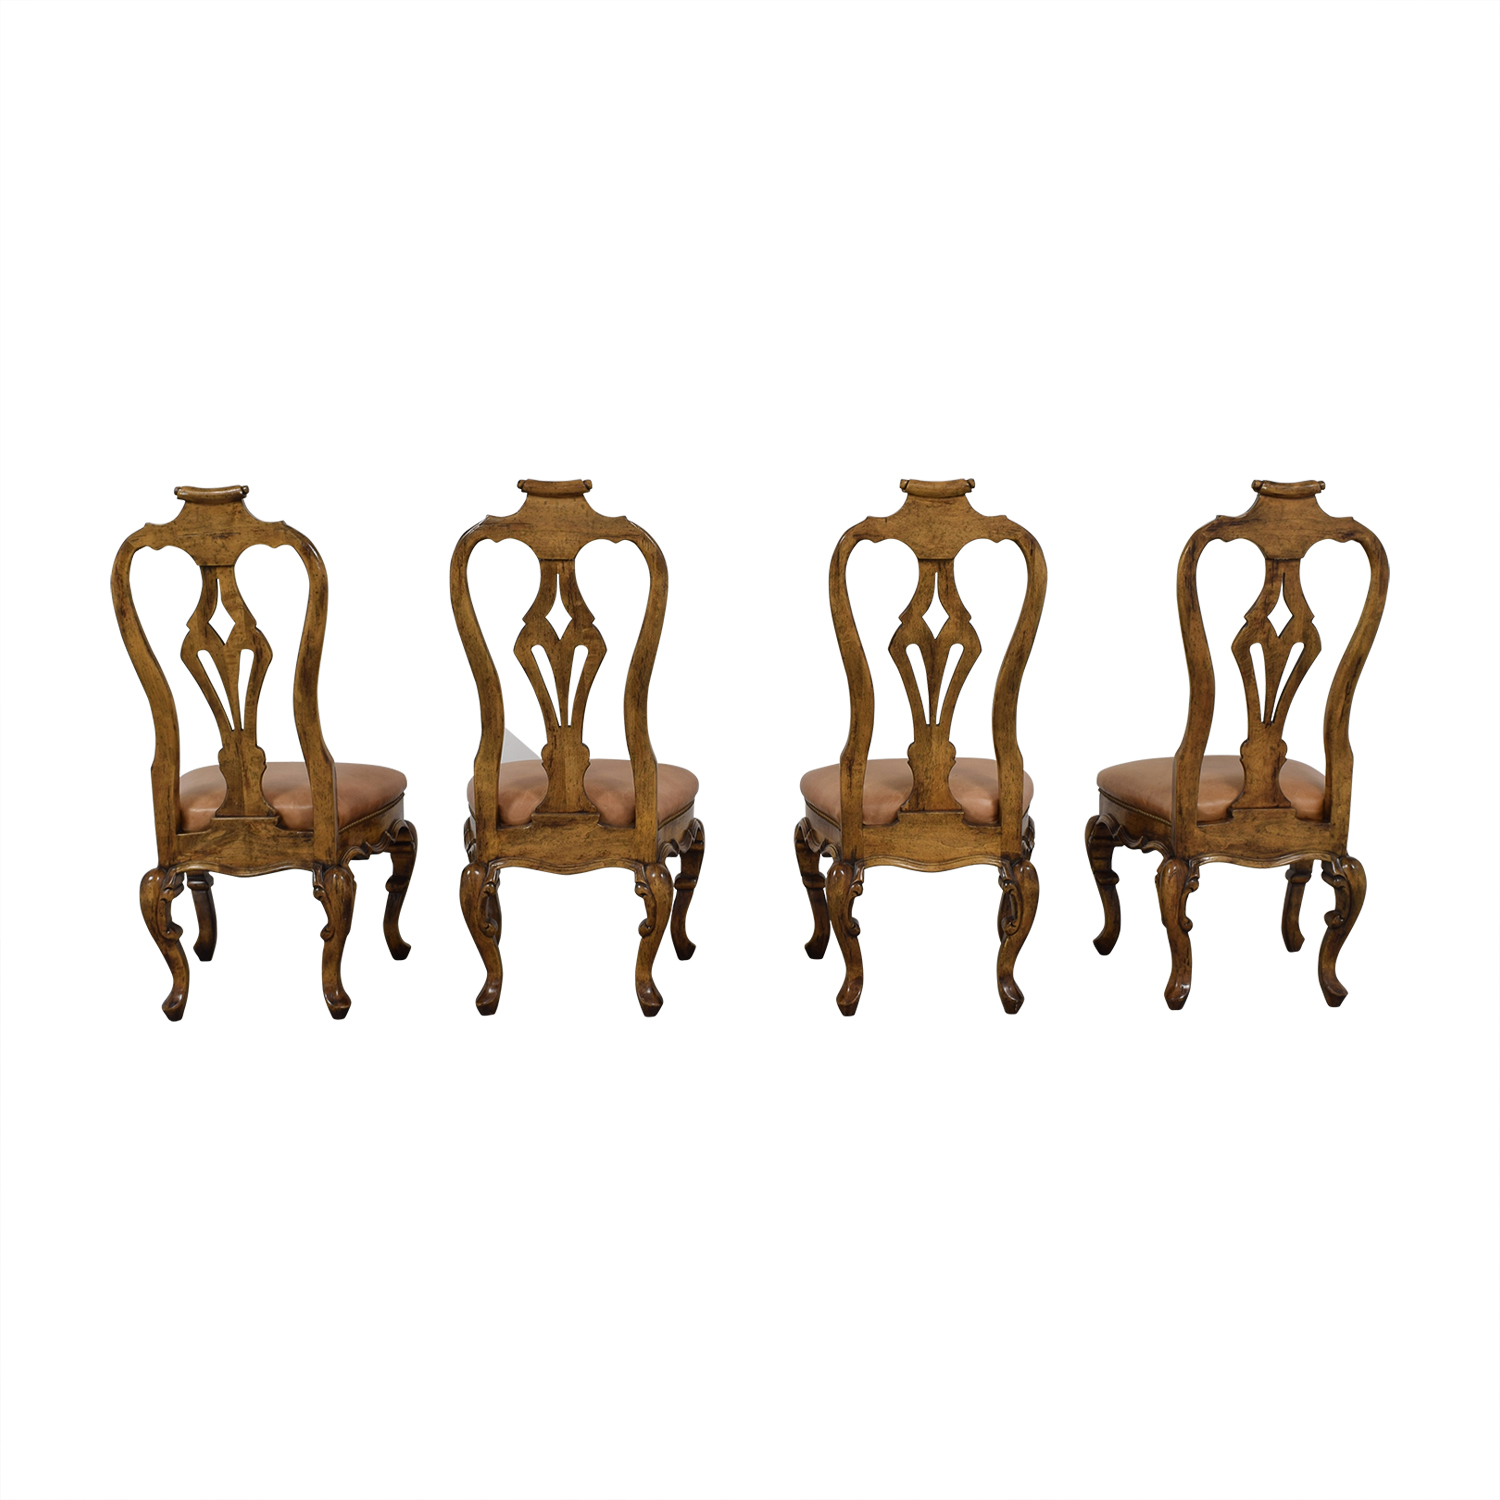 Bausman and Co Bausman and Co Portuguese Queen Anne Tan Dining Chairs on sale